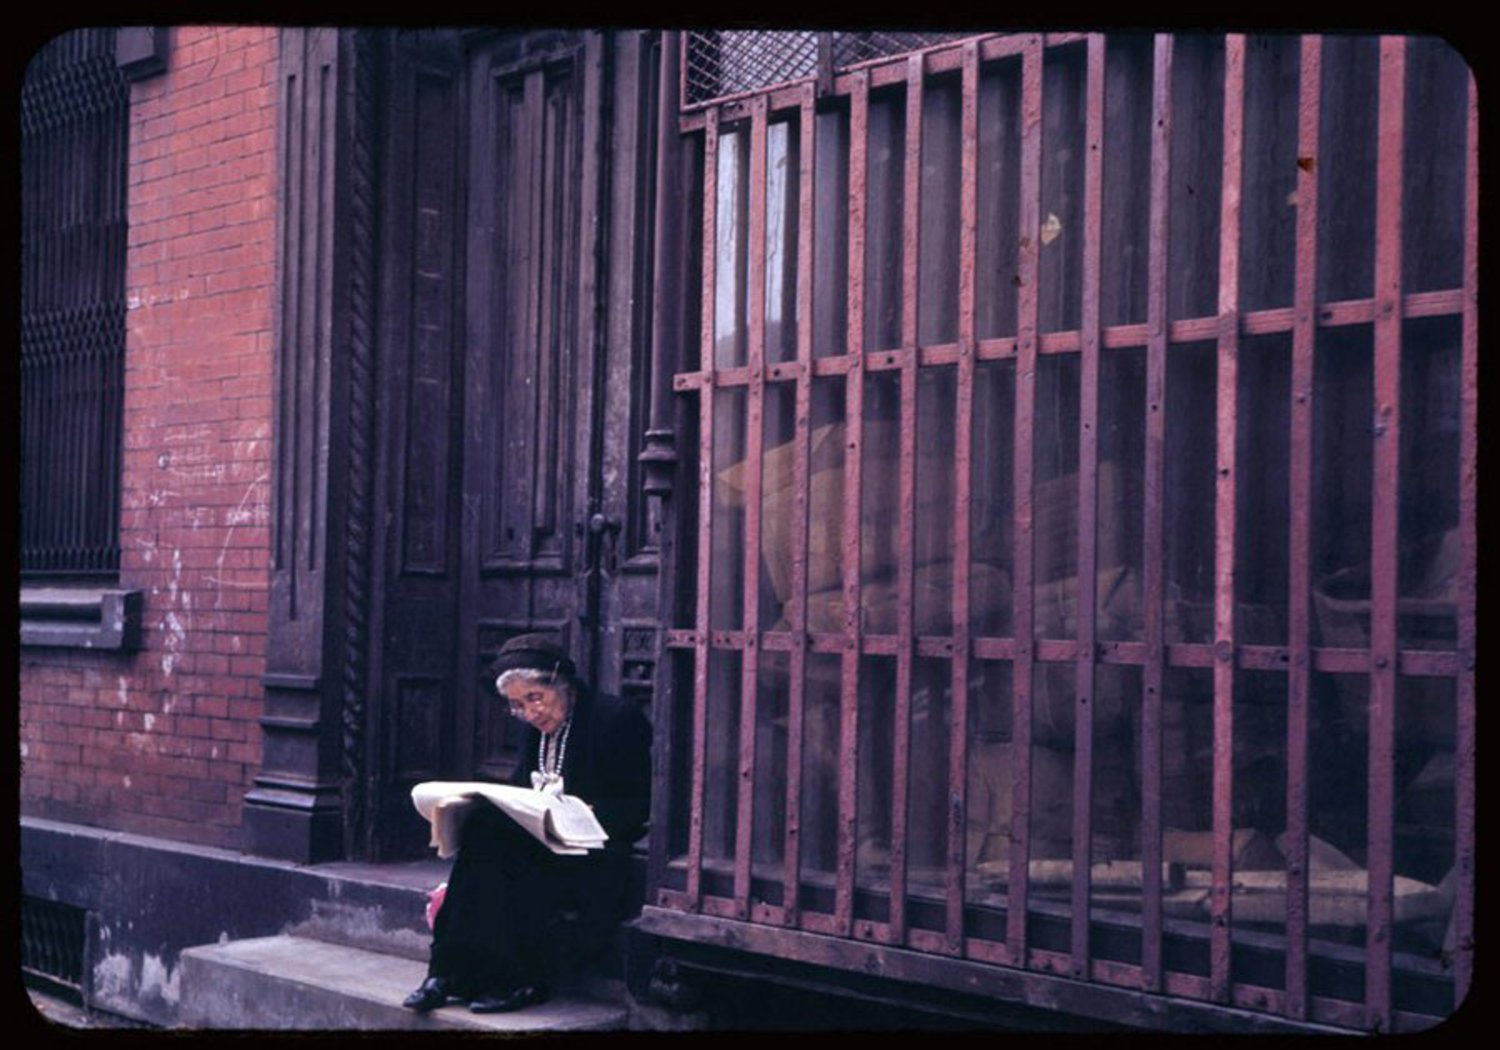 This woman enjoys her Sunday newspaper on a stoop in the Lower East Side.